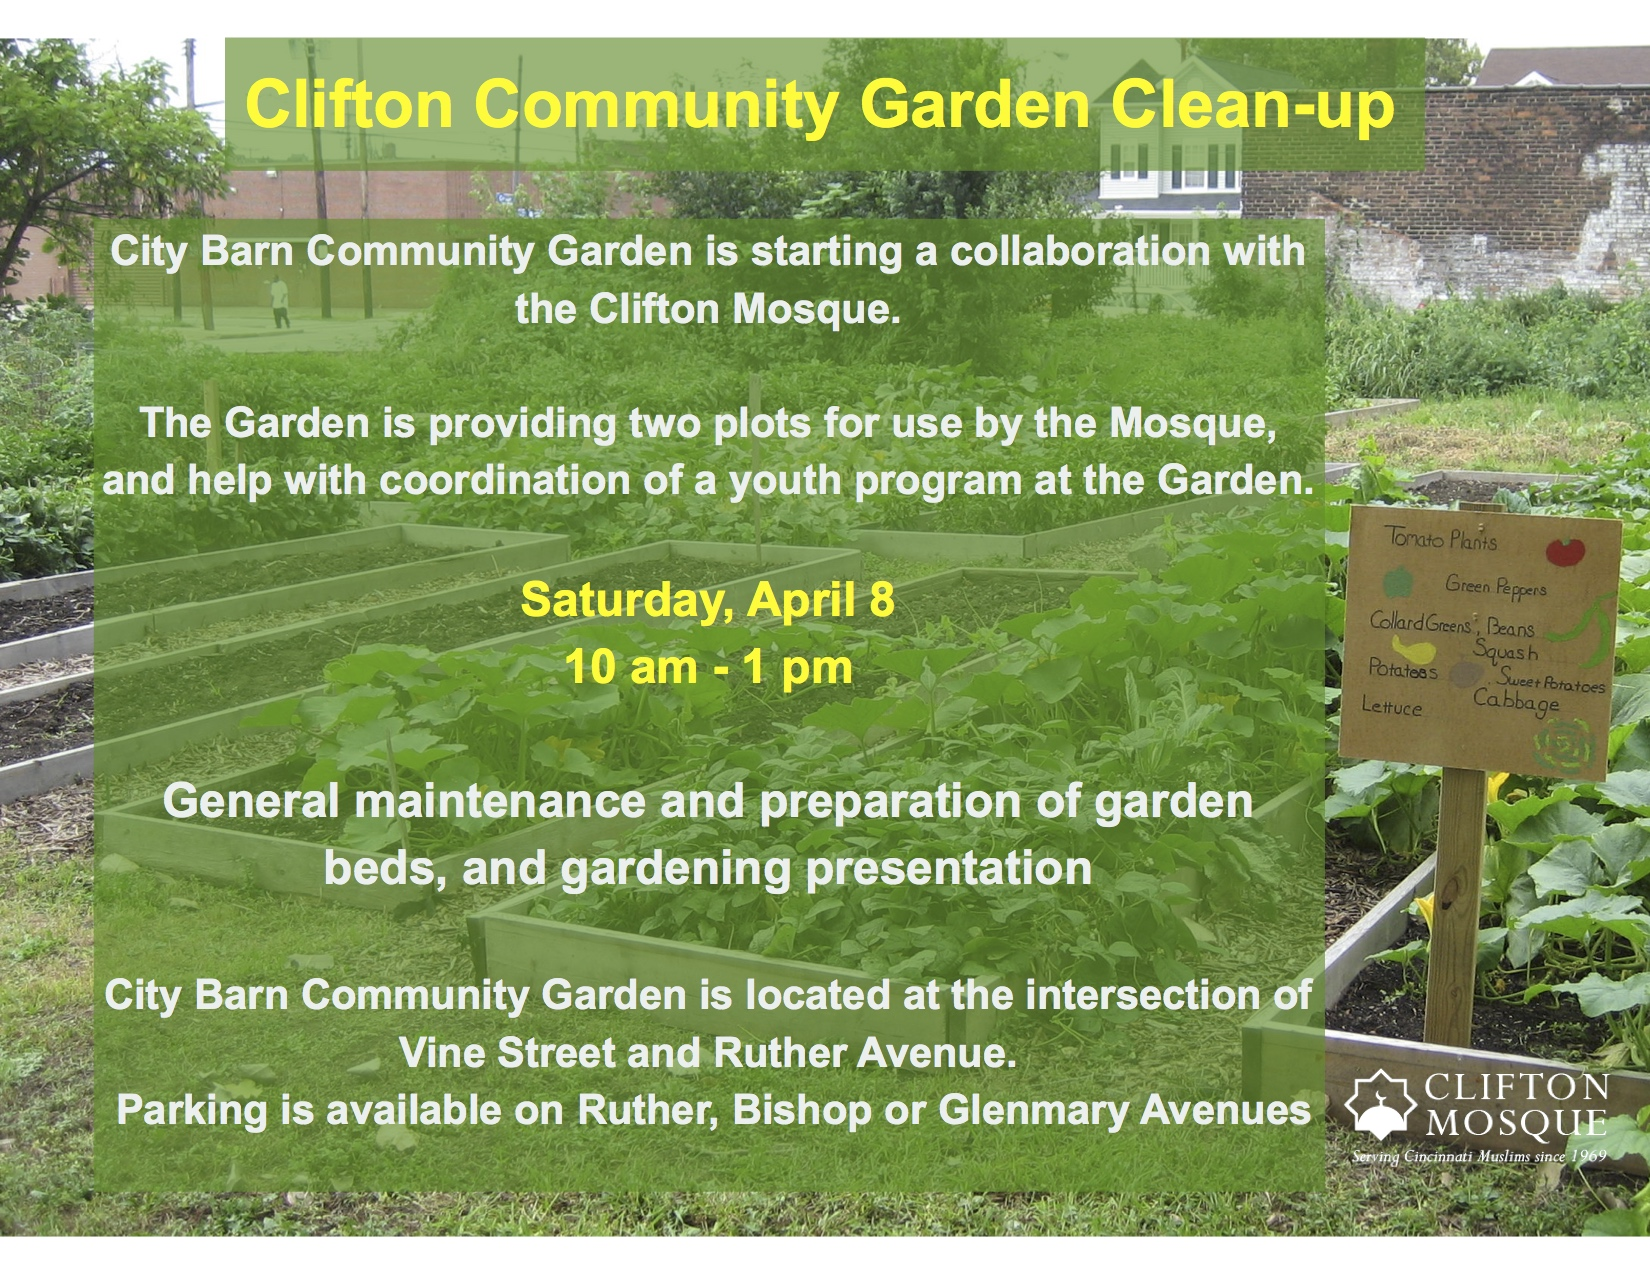 City Barn Community Garden is collaborating with the Clifton Mosque by providing us with two plots at the community garden located at the intersection of Vine St. and Ruther Ave.  On Saturday, April 8th at 10 am. we will be gathering at the garden to do a community clean-up. We will be performing general maintenance and preparing the garden beds for spring planting.  Please bring your friends to help us prepare our plots for the spring!